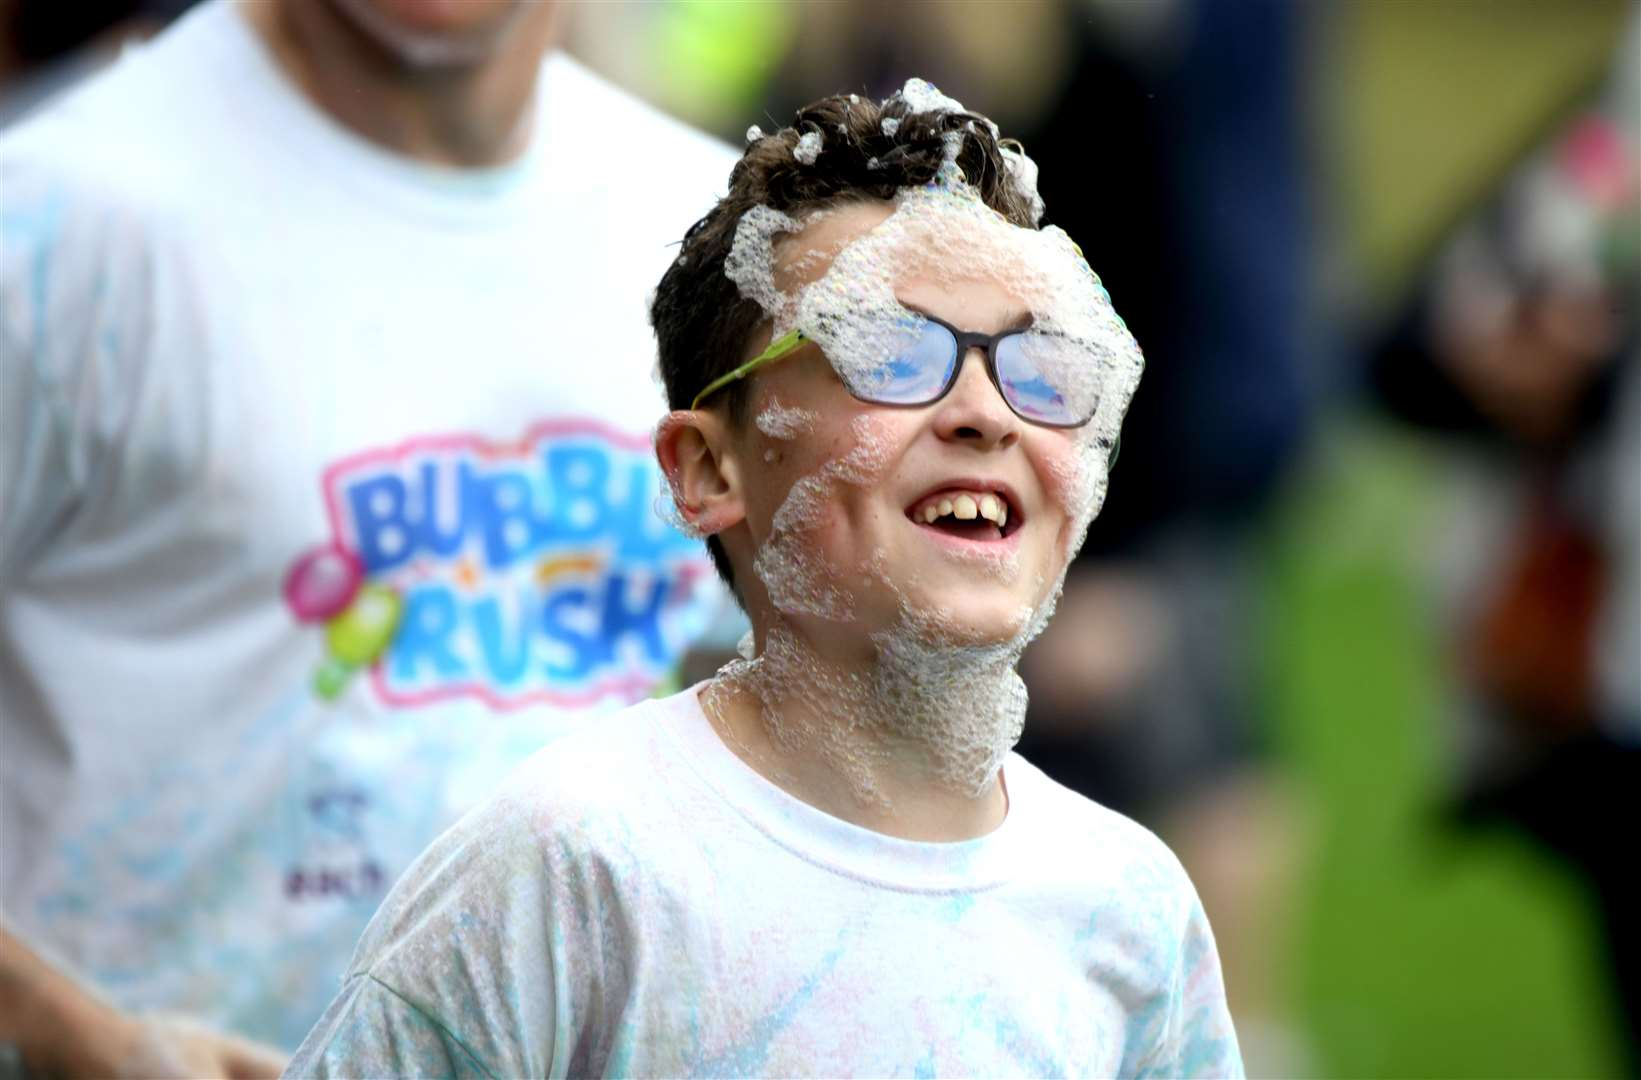 Bubble Rush at The Walks in Kings Lynn. MLNF-21AF09592